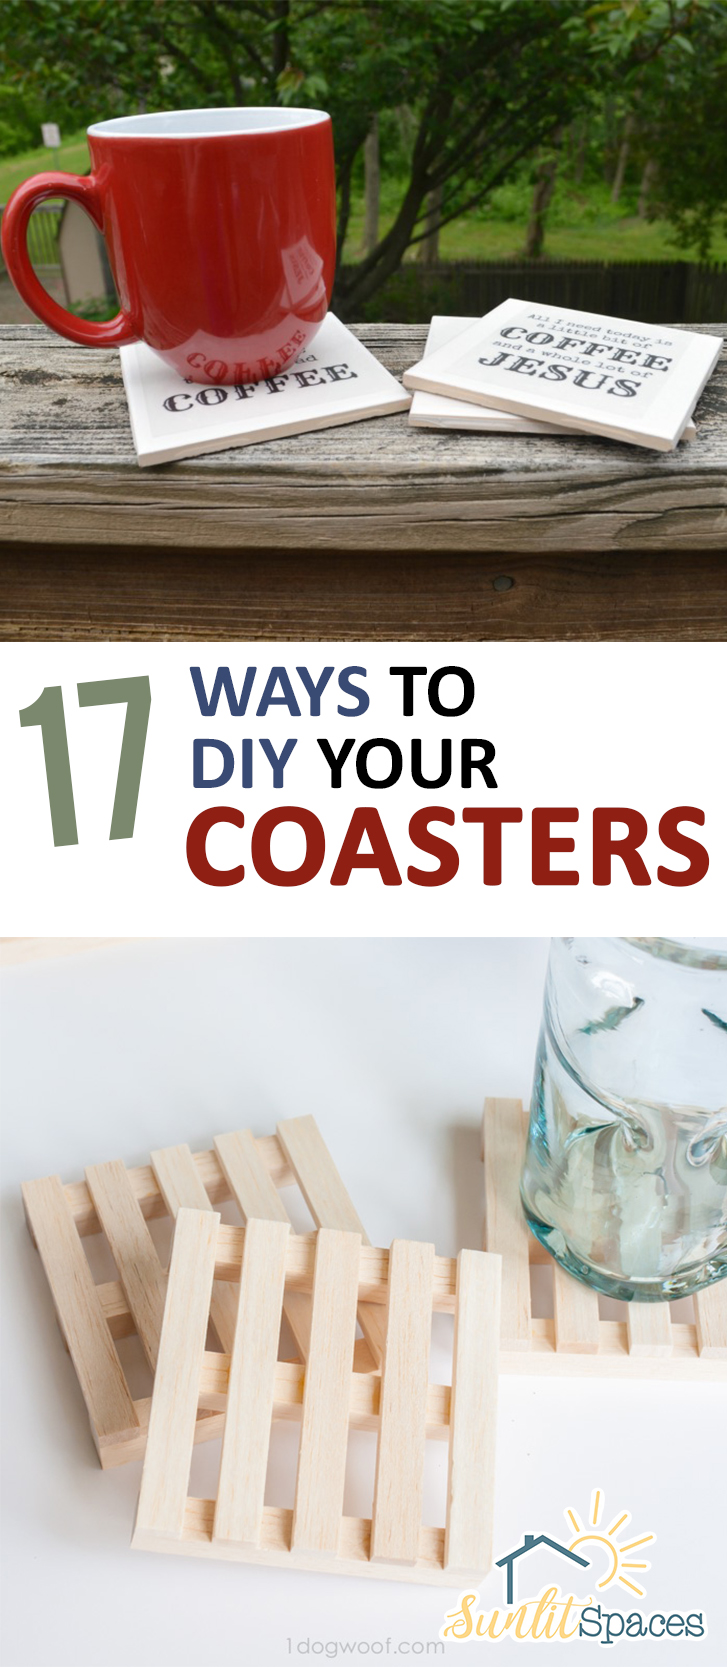 PIN 17 Ways to DIY Your Coasters